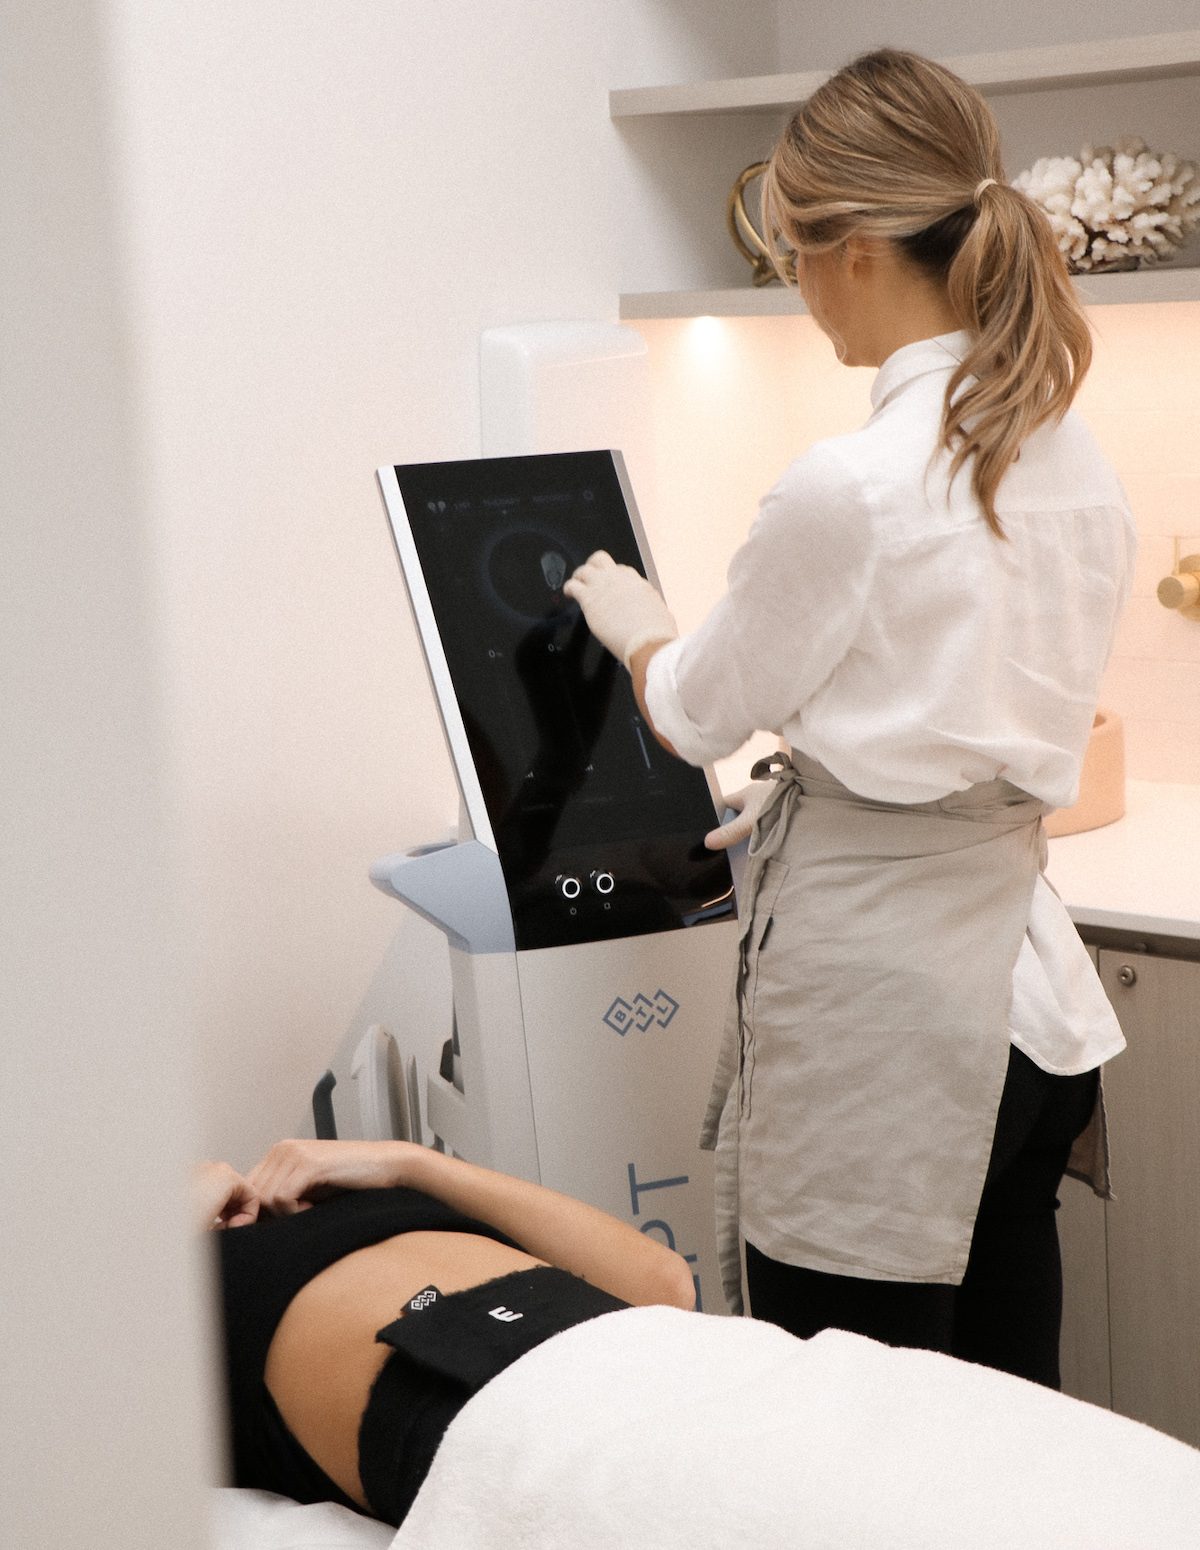 A technician setting up the EMSCULPT treatment for a cient